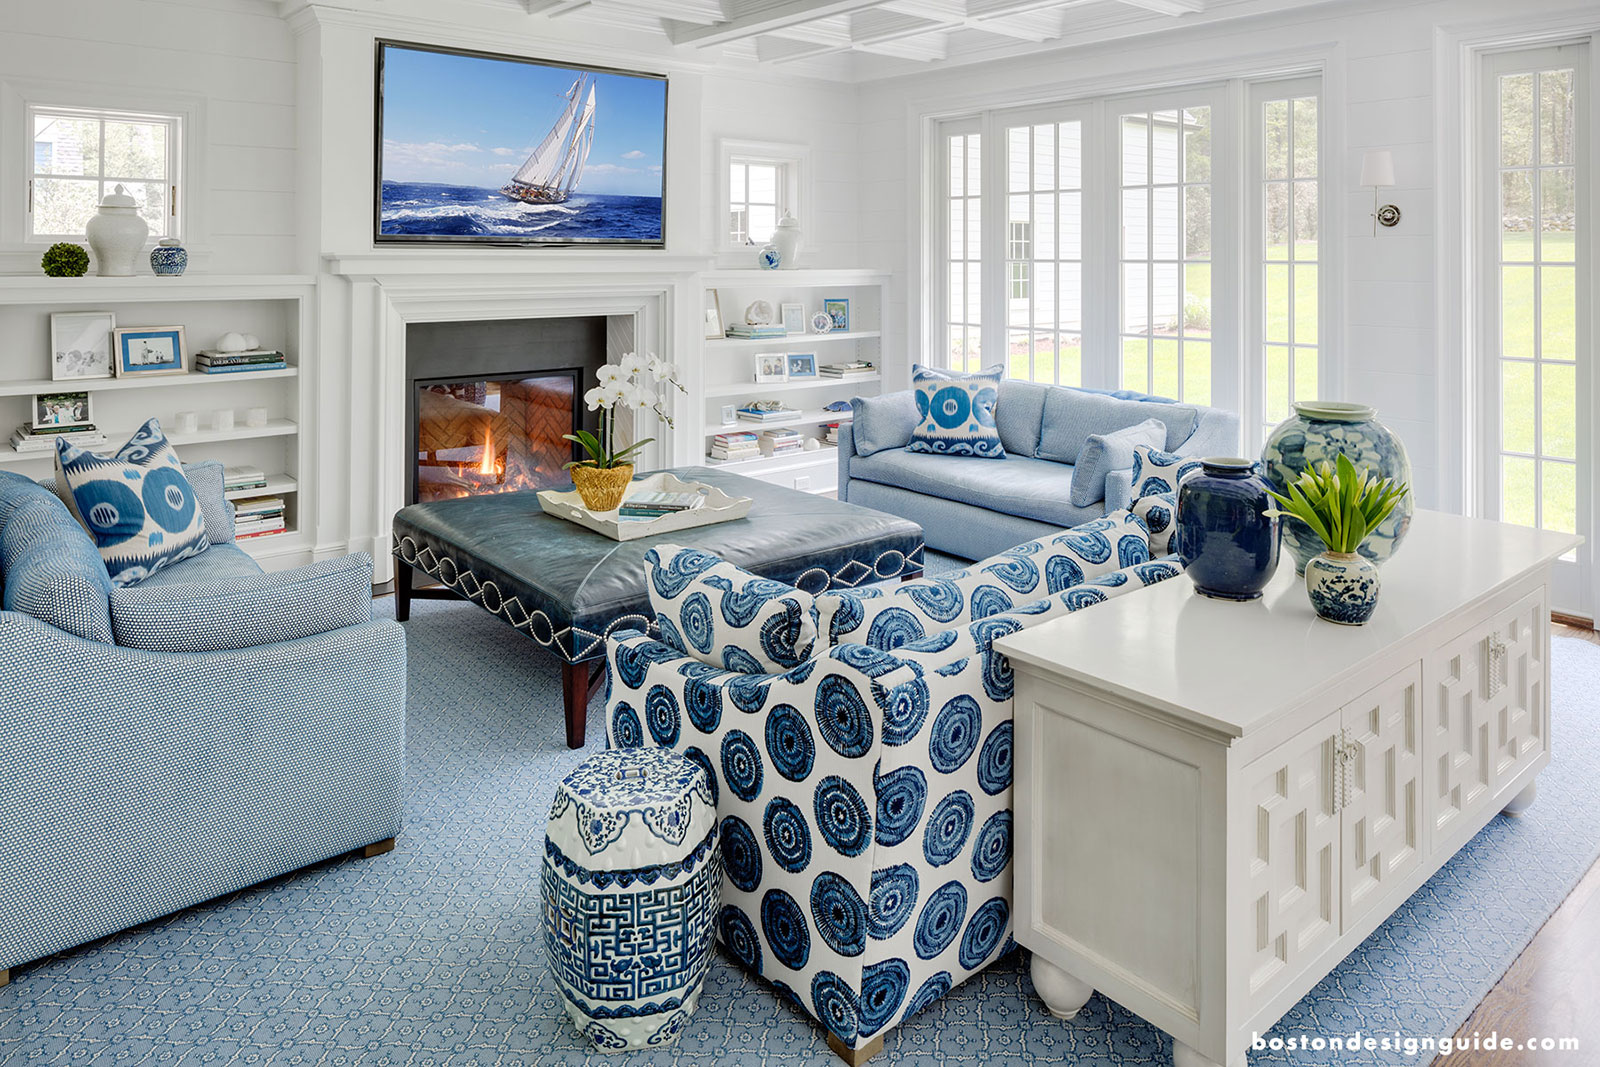 High-end living room with blue and white decor